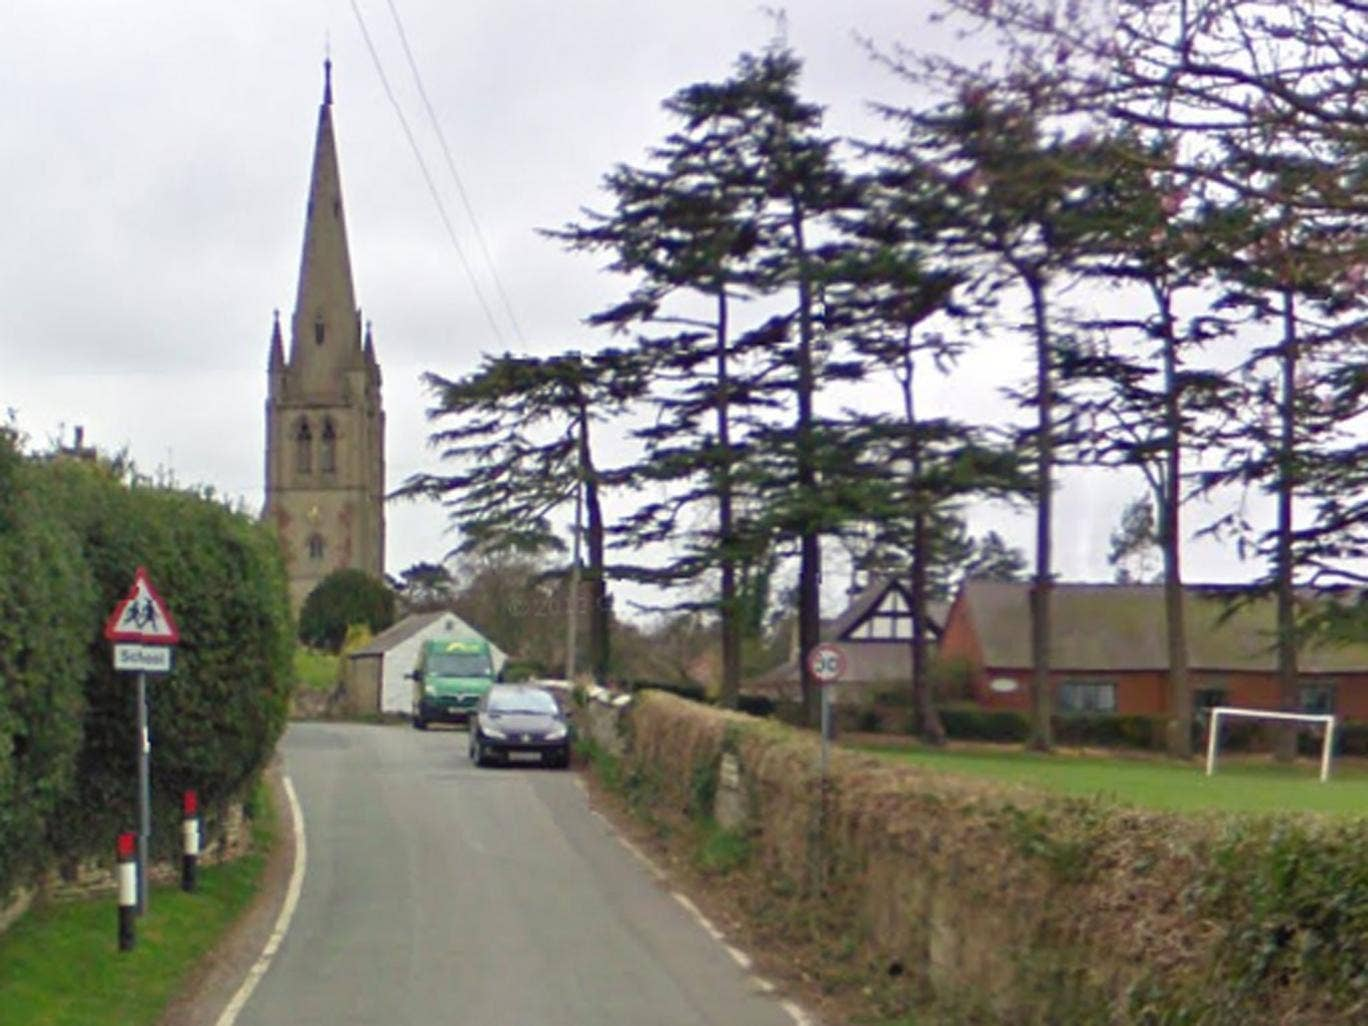 Clive C of E Primary School, Shropshire, said it had only received five working days' notice about an unspecified 'mother's wedding' before rejecting the request